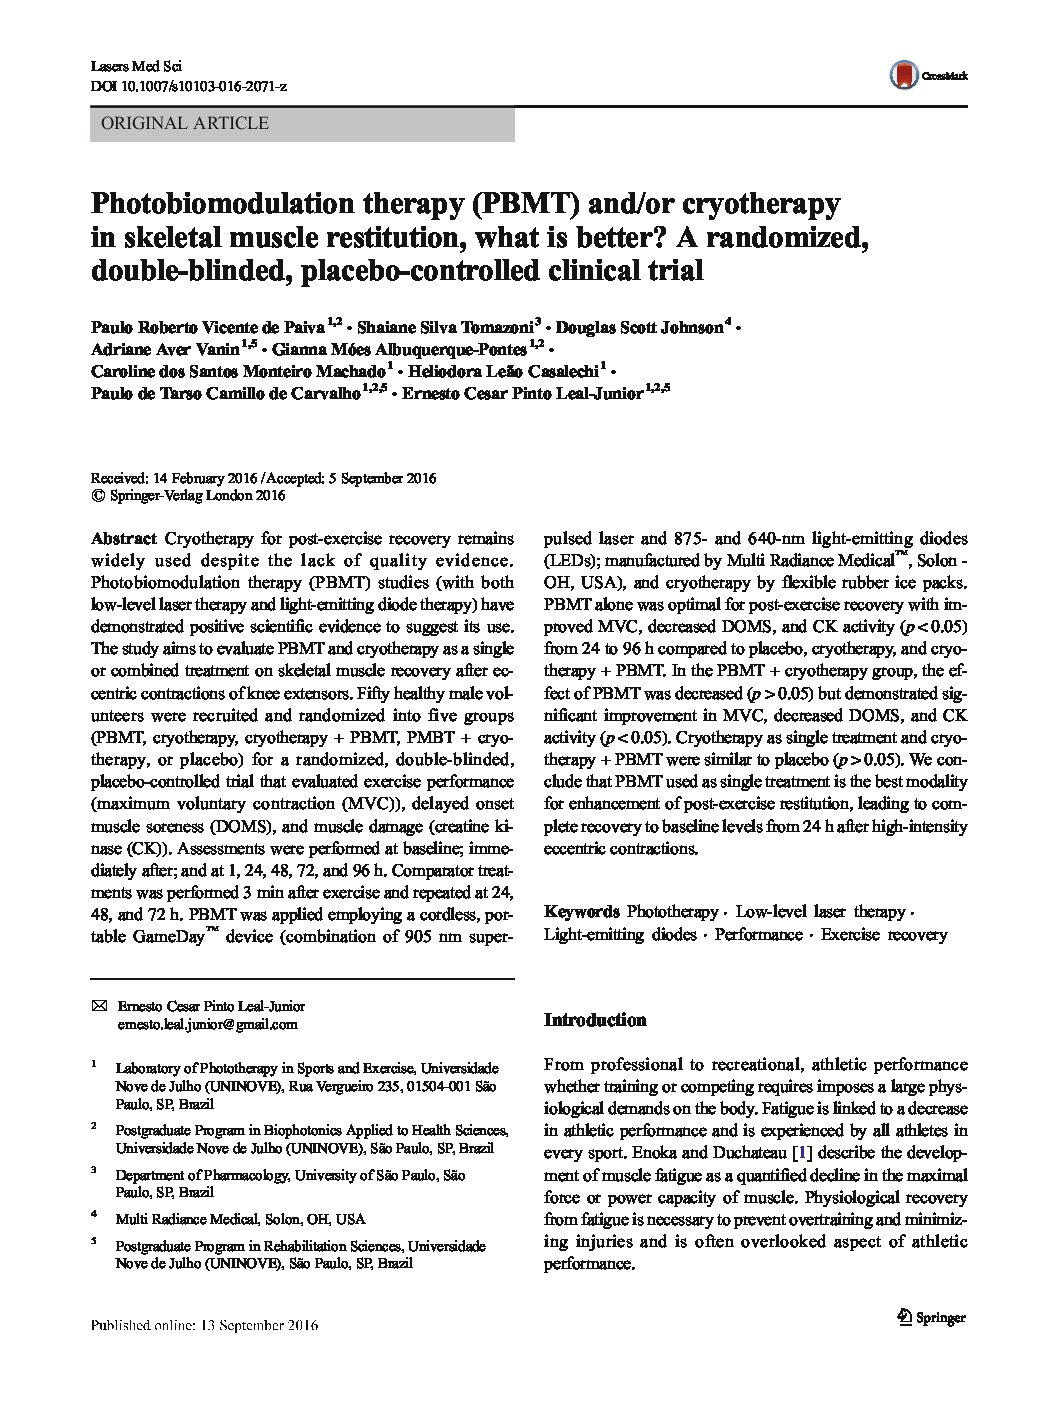 Photobiomodulation therapy (PBMT) and-or cryotherapy in skeletal muscle restitution